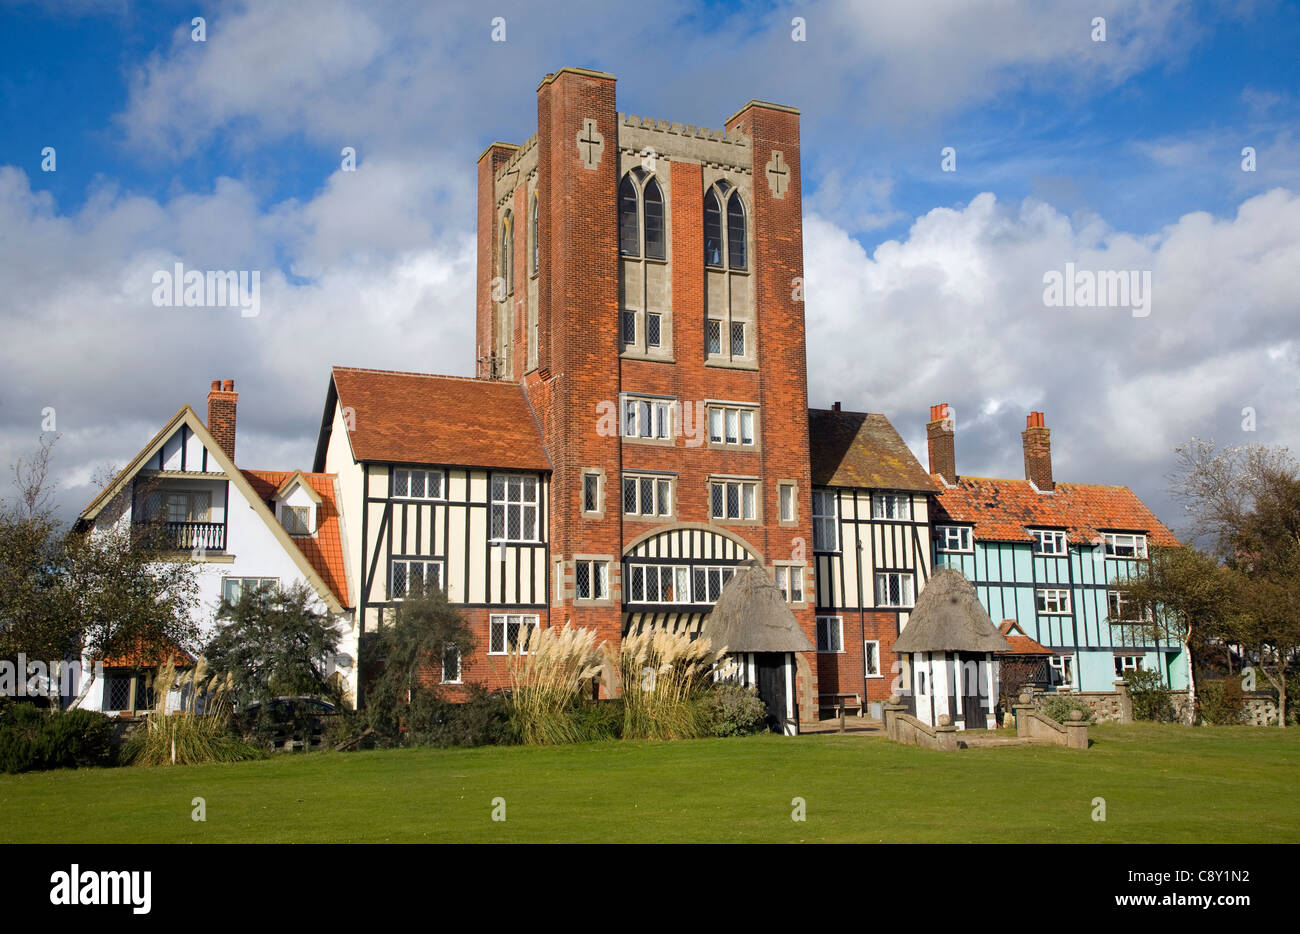 Eccentric mock Tudor architecture of water tower and houses, Thorpeness, Suffolk, England - Stock Image